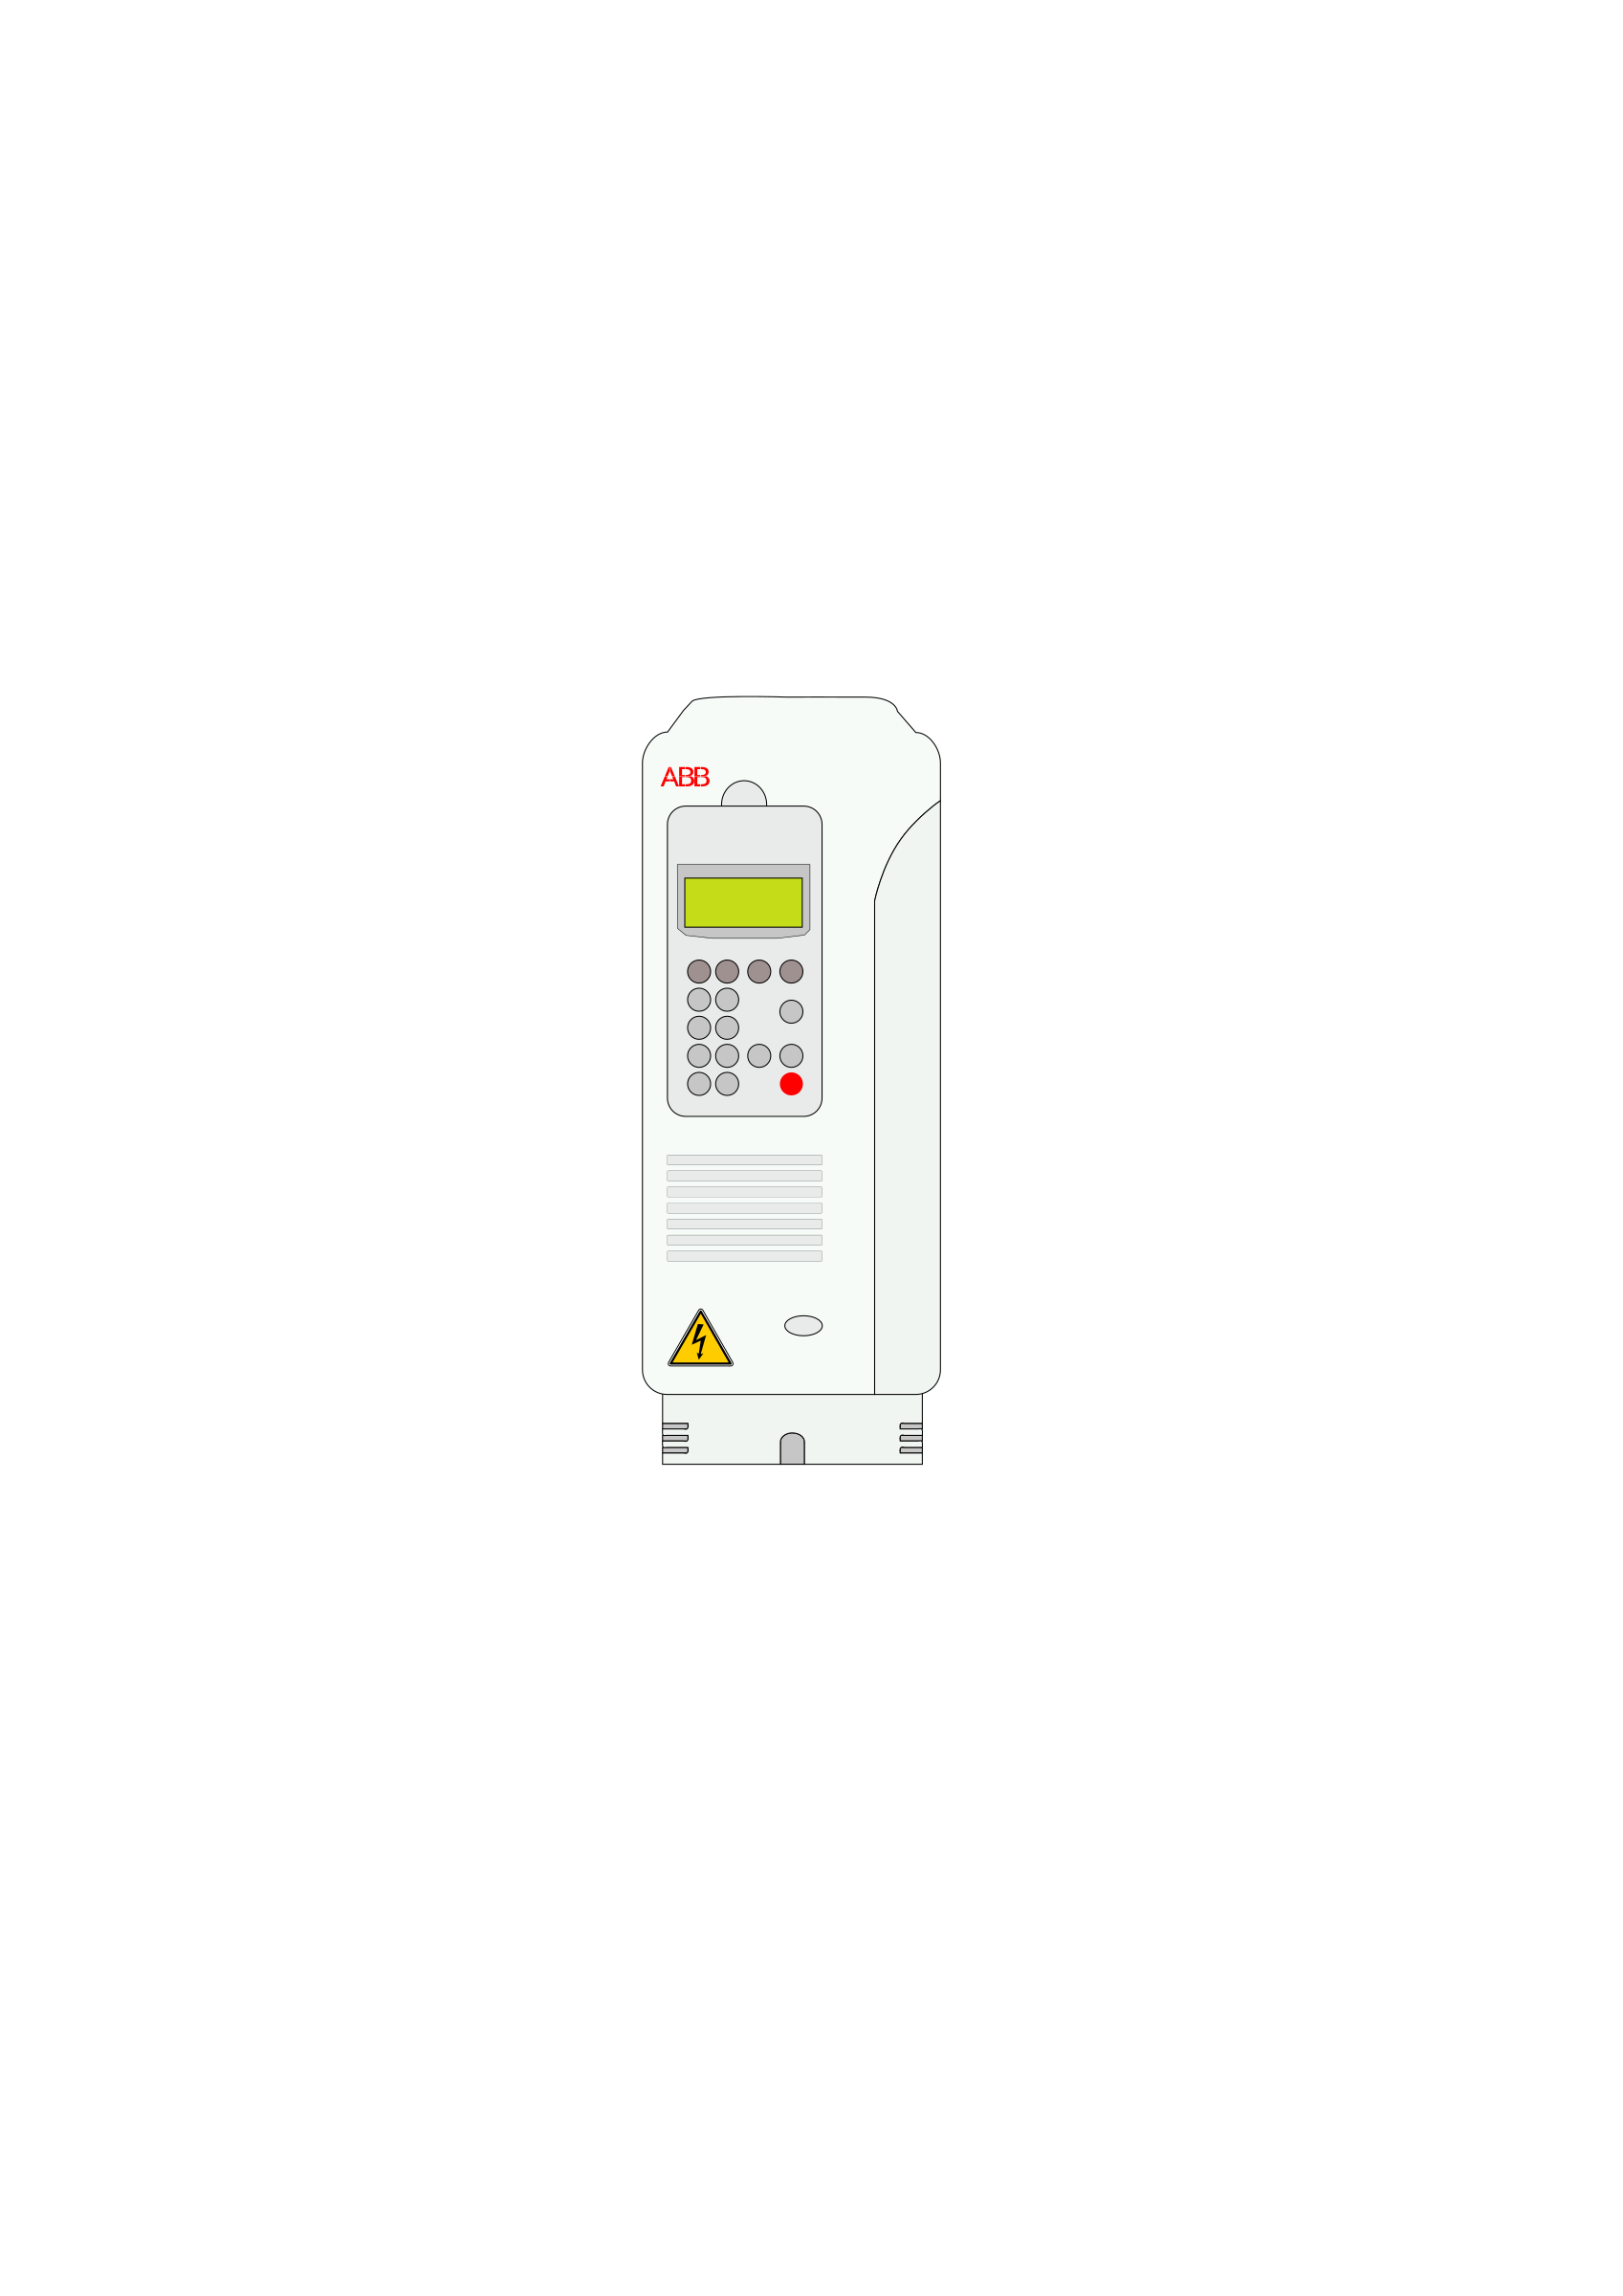 Inverter ABB ACS800 by simatic